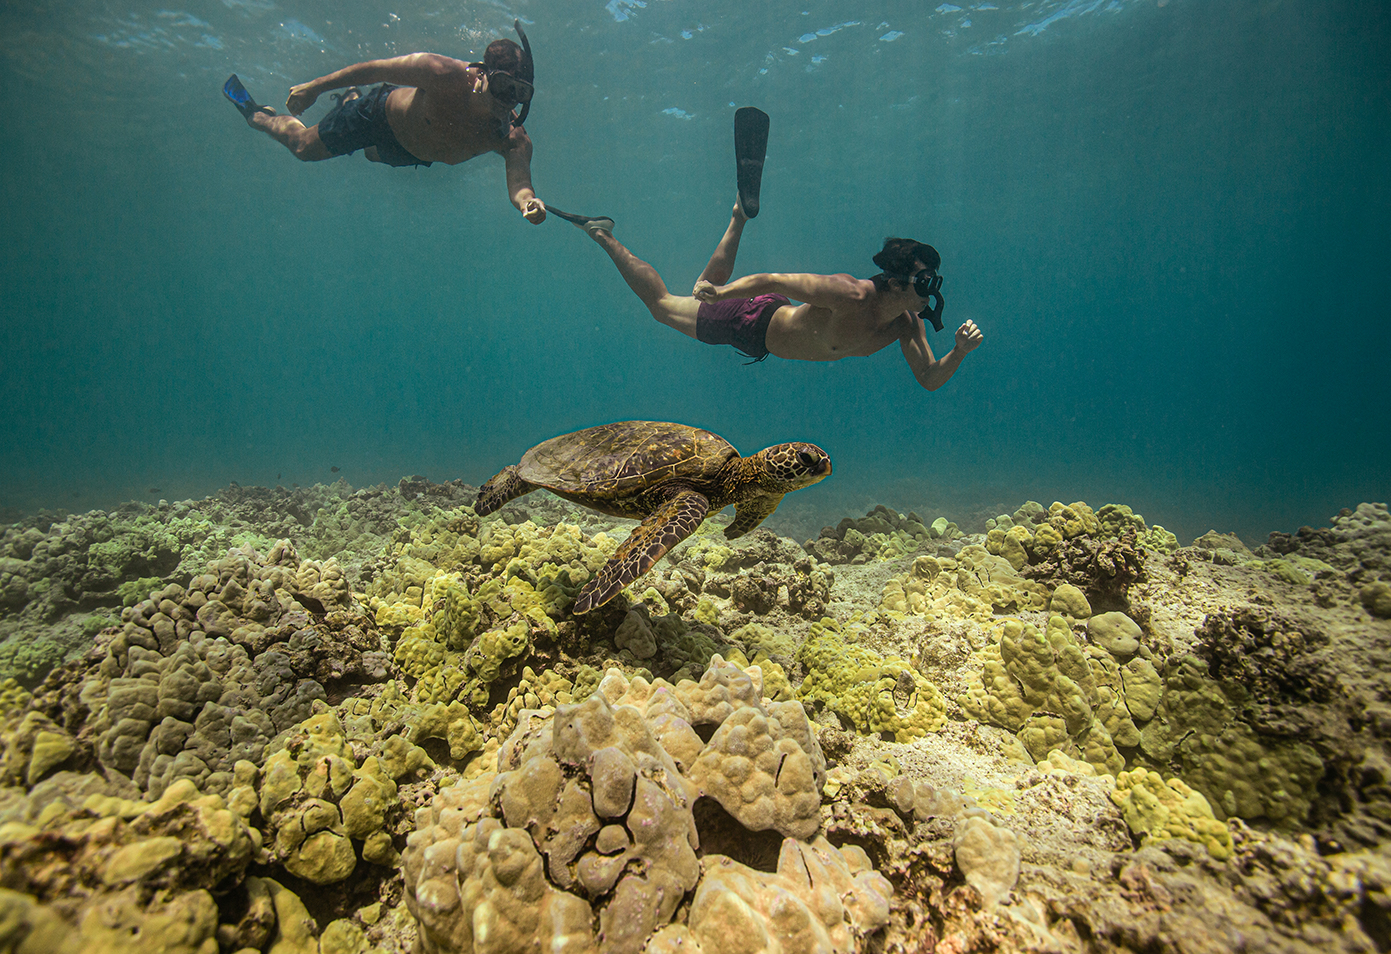 snorkeling with turtles at Fairmont Orchid, Hawaii